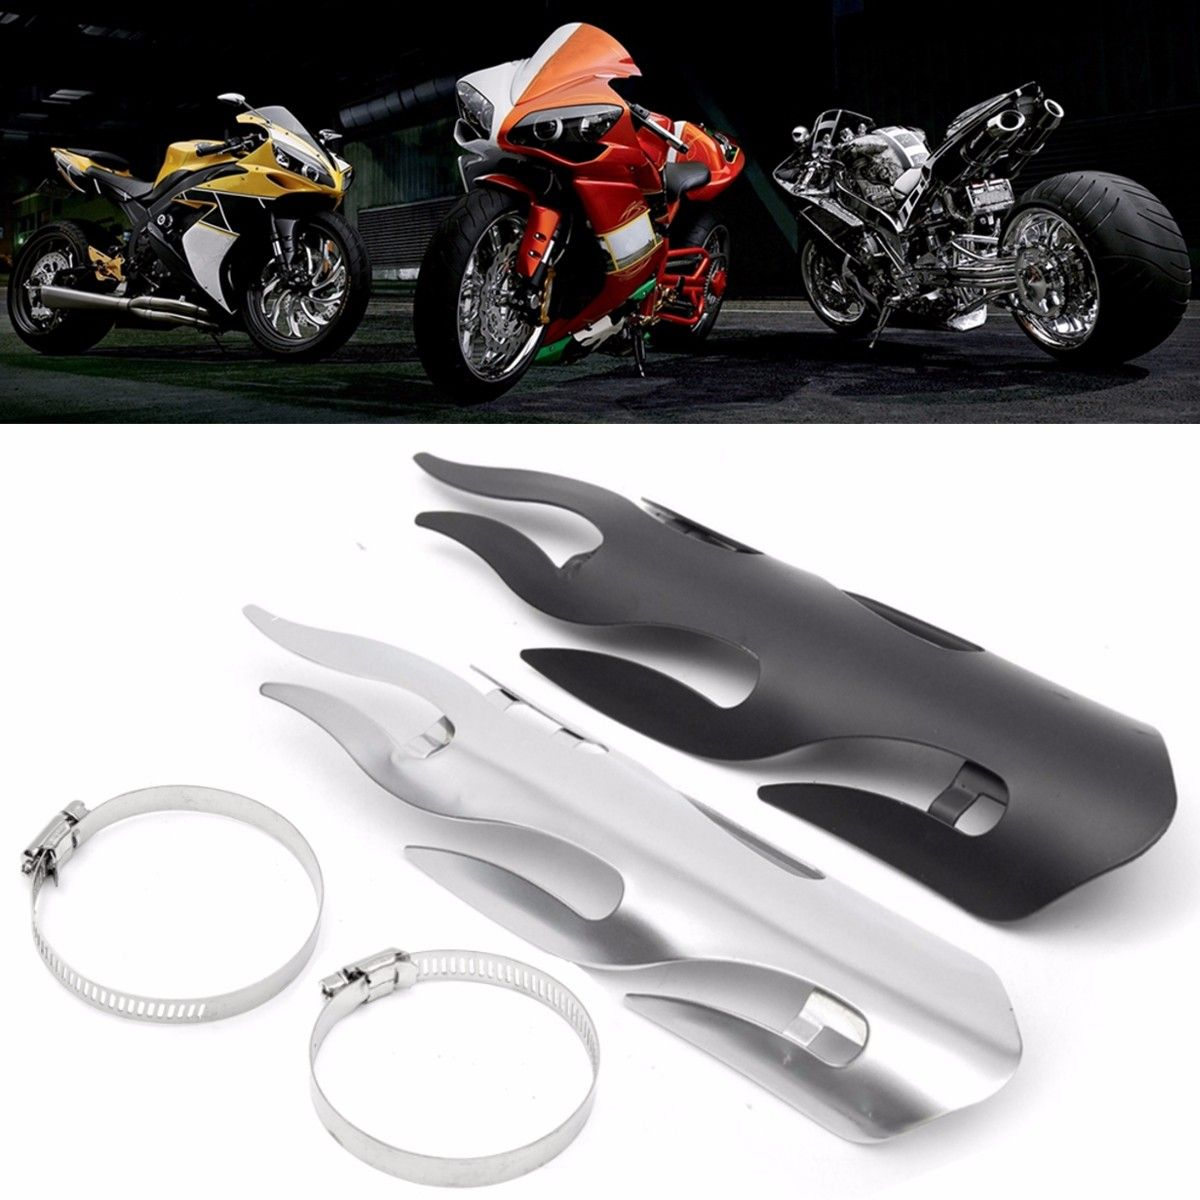 Black/Chrome 9 Inch Exhaust Muffler Pipe Heat Shield Flame Cover Heel Guard For Yamaha for Suzuki for Harley